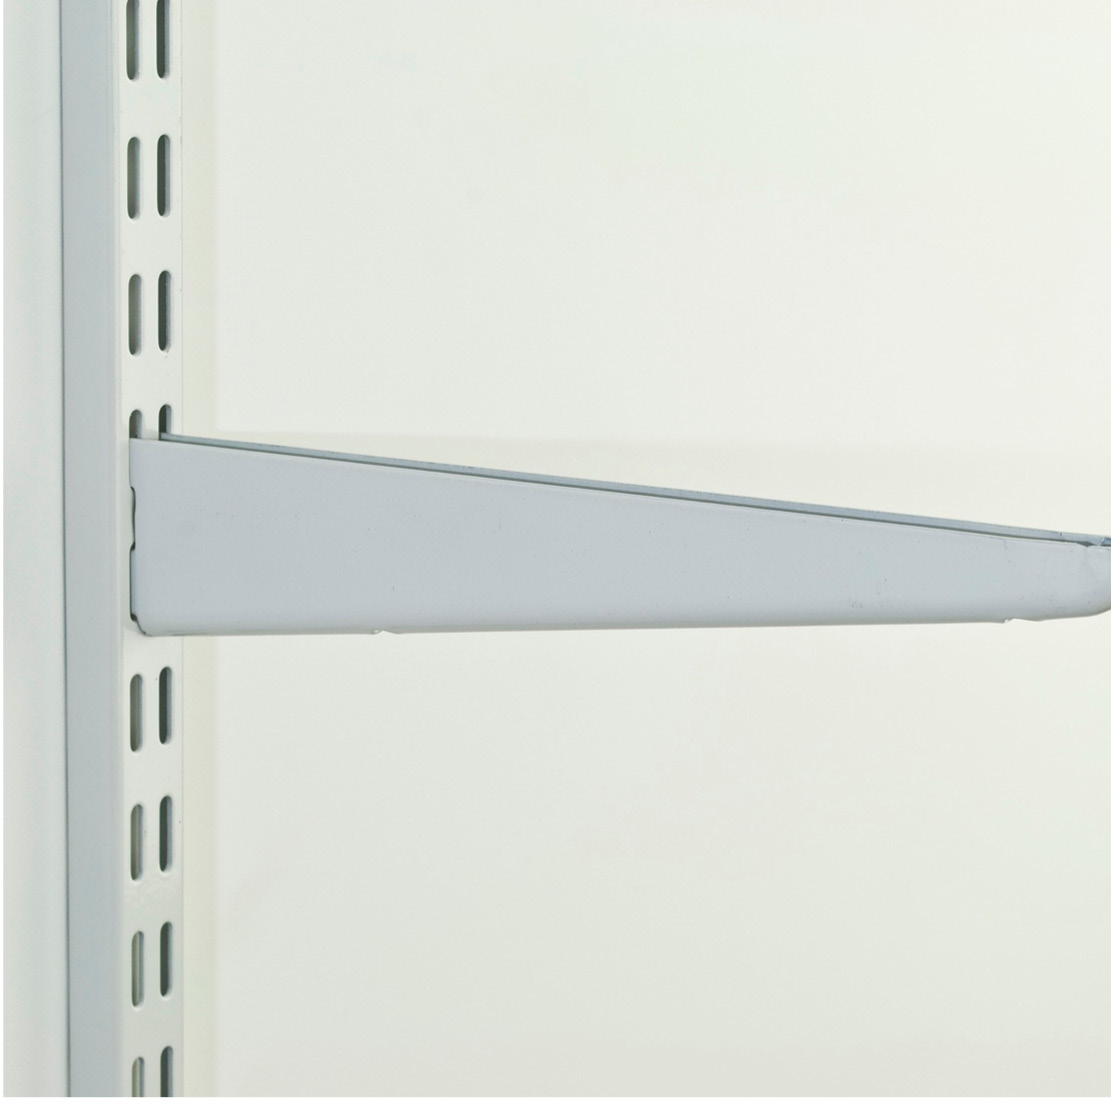 120mm Twin Slot Shelving Brackets - White